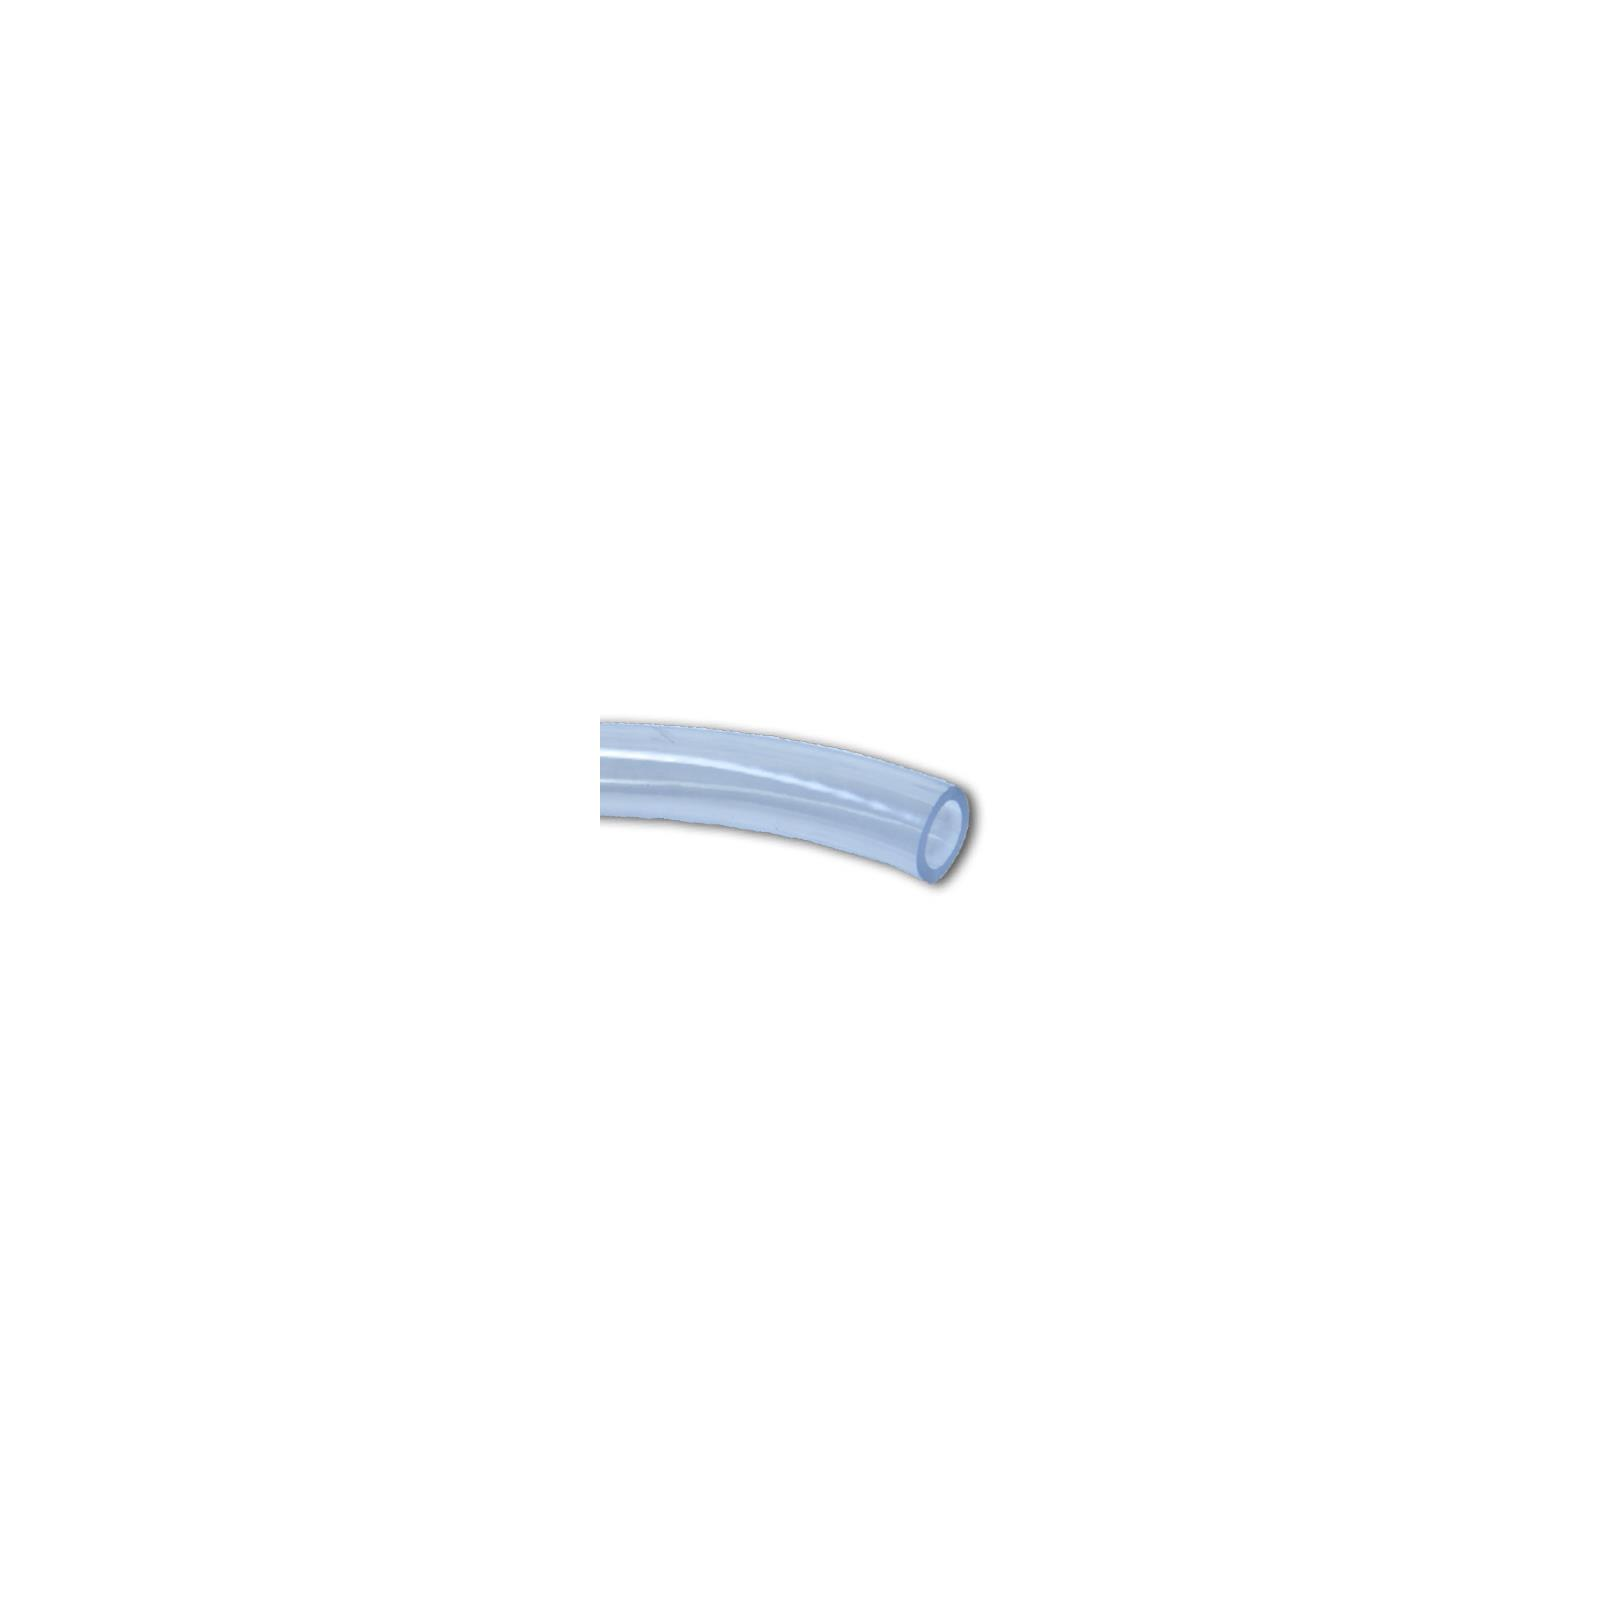 T10004005-Master-Plumber-PVC-Tubing-Clear-1-4-In-ID-x-3-8-In-OD-x-100-Ft thumbnail 2